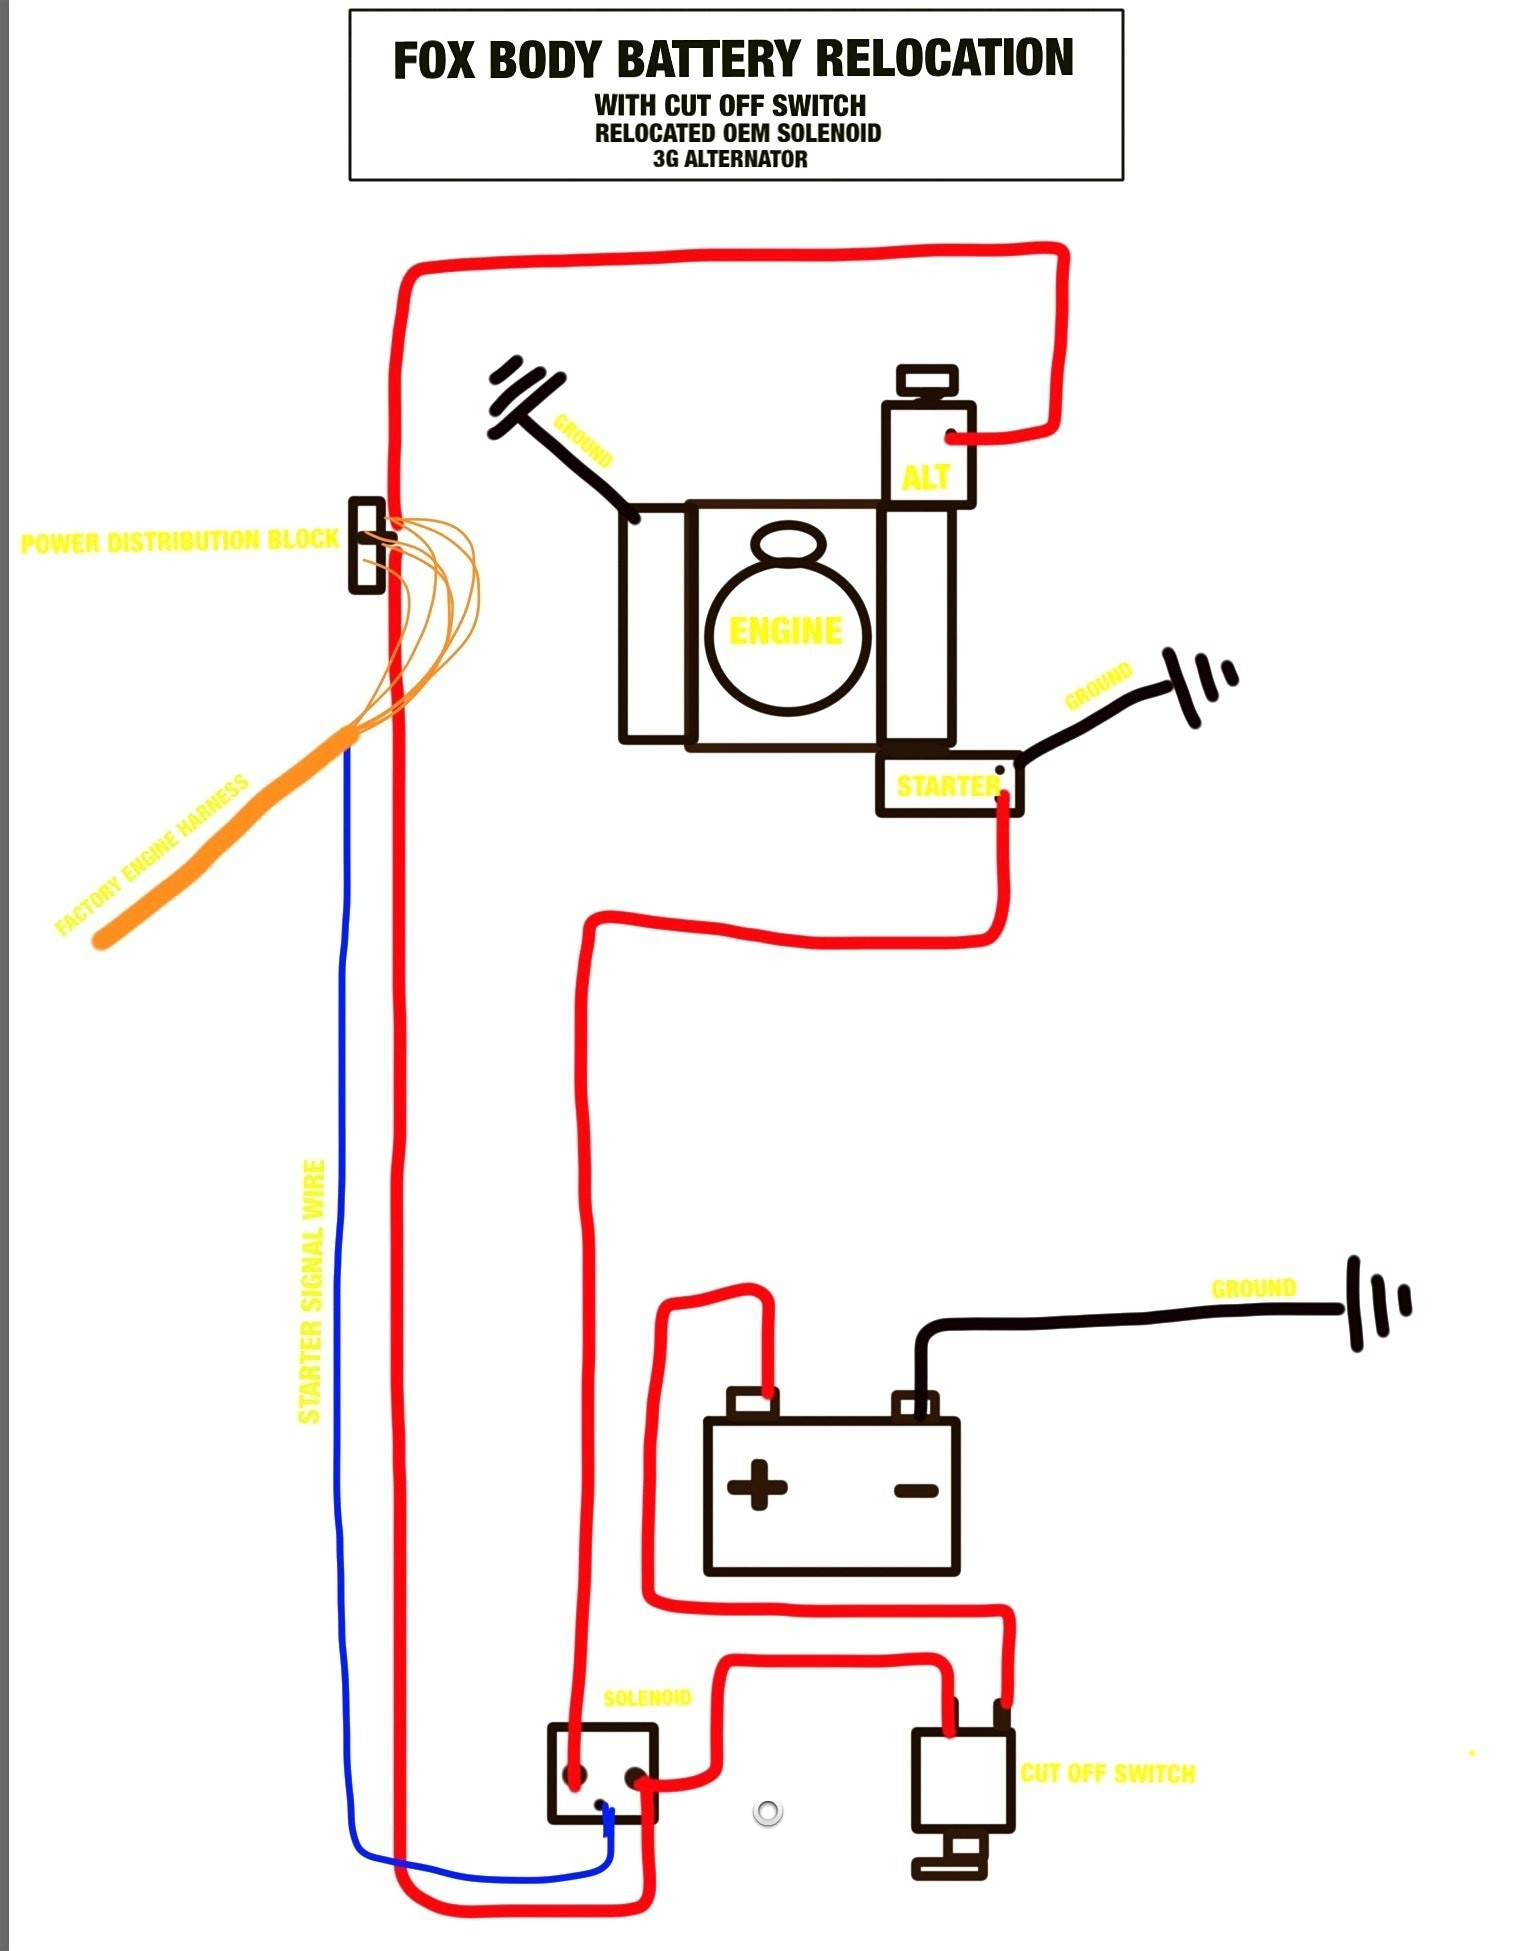 Rv Battery Disconnect Switch Wiring Diagram | Wiring Diagram - Battery Disconnect Switch Wiring Diagram